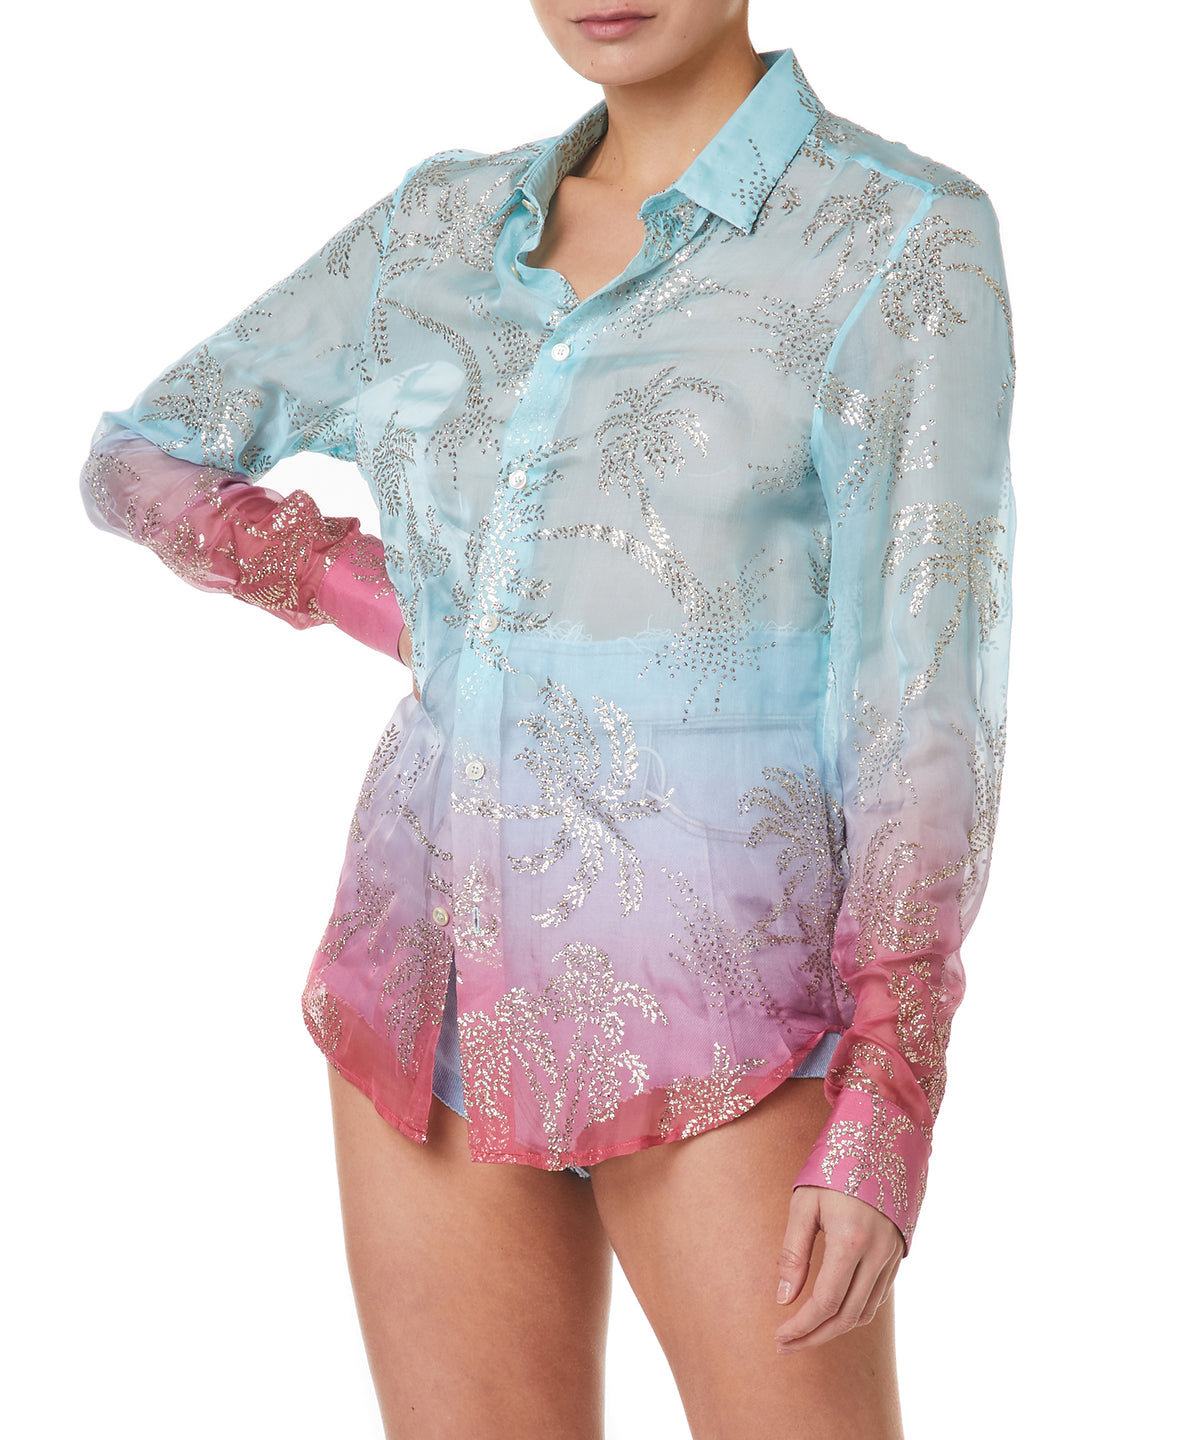 Garcons Infideles Palm Women Multi Shirt